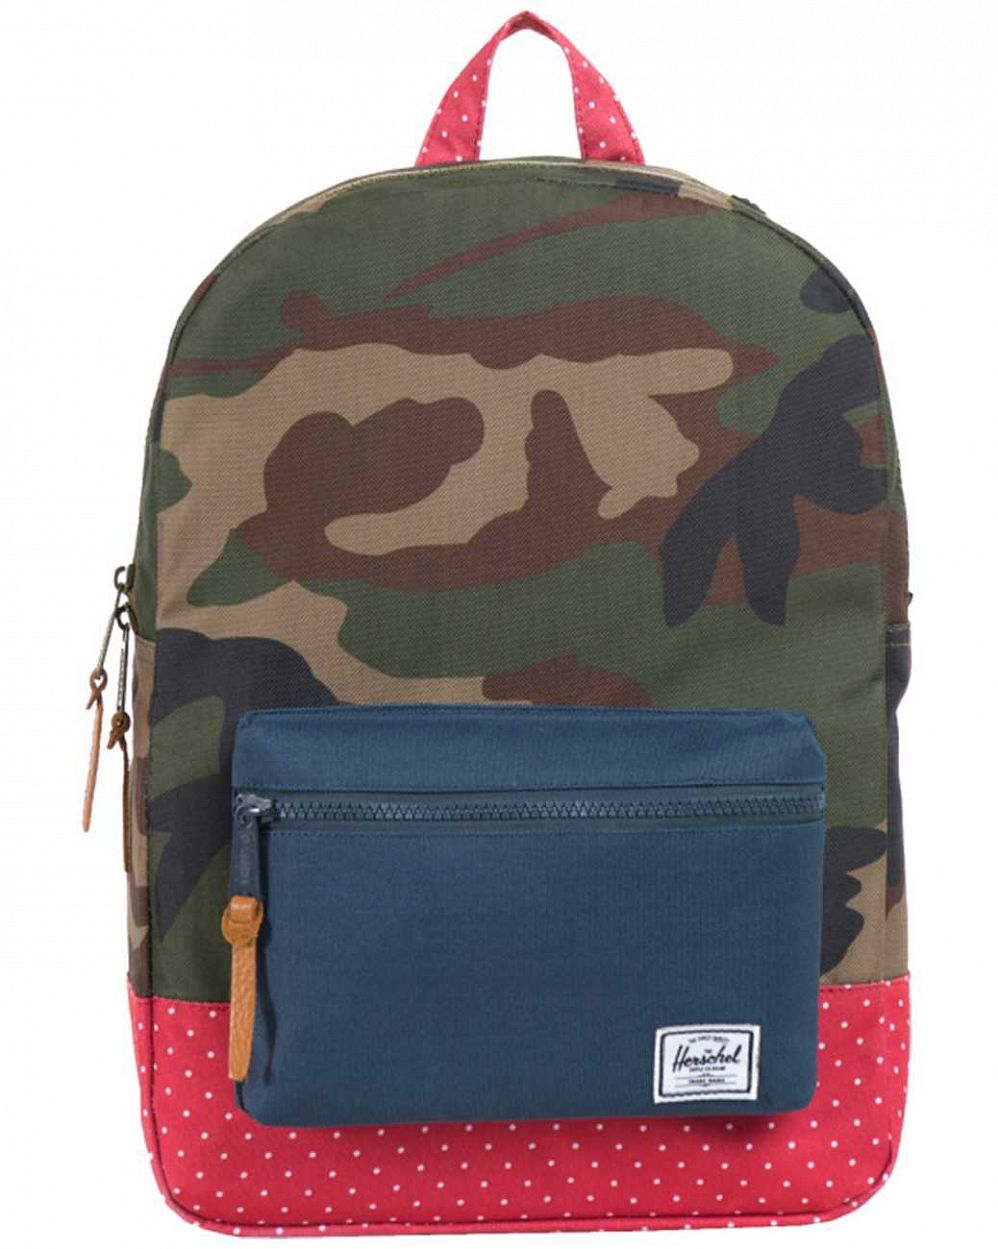 Рюкзак Herschel Settlements Youth Woodland Camo Navy Red Polka Dot отзывы